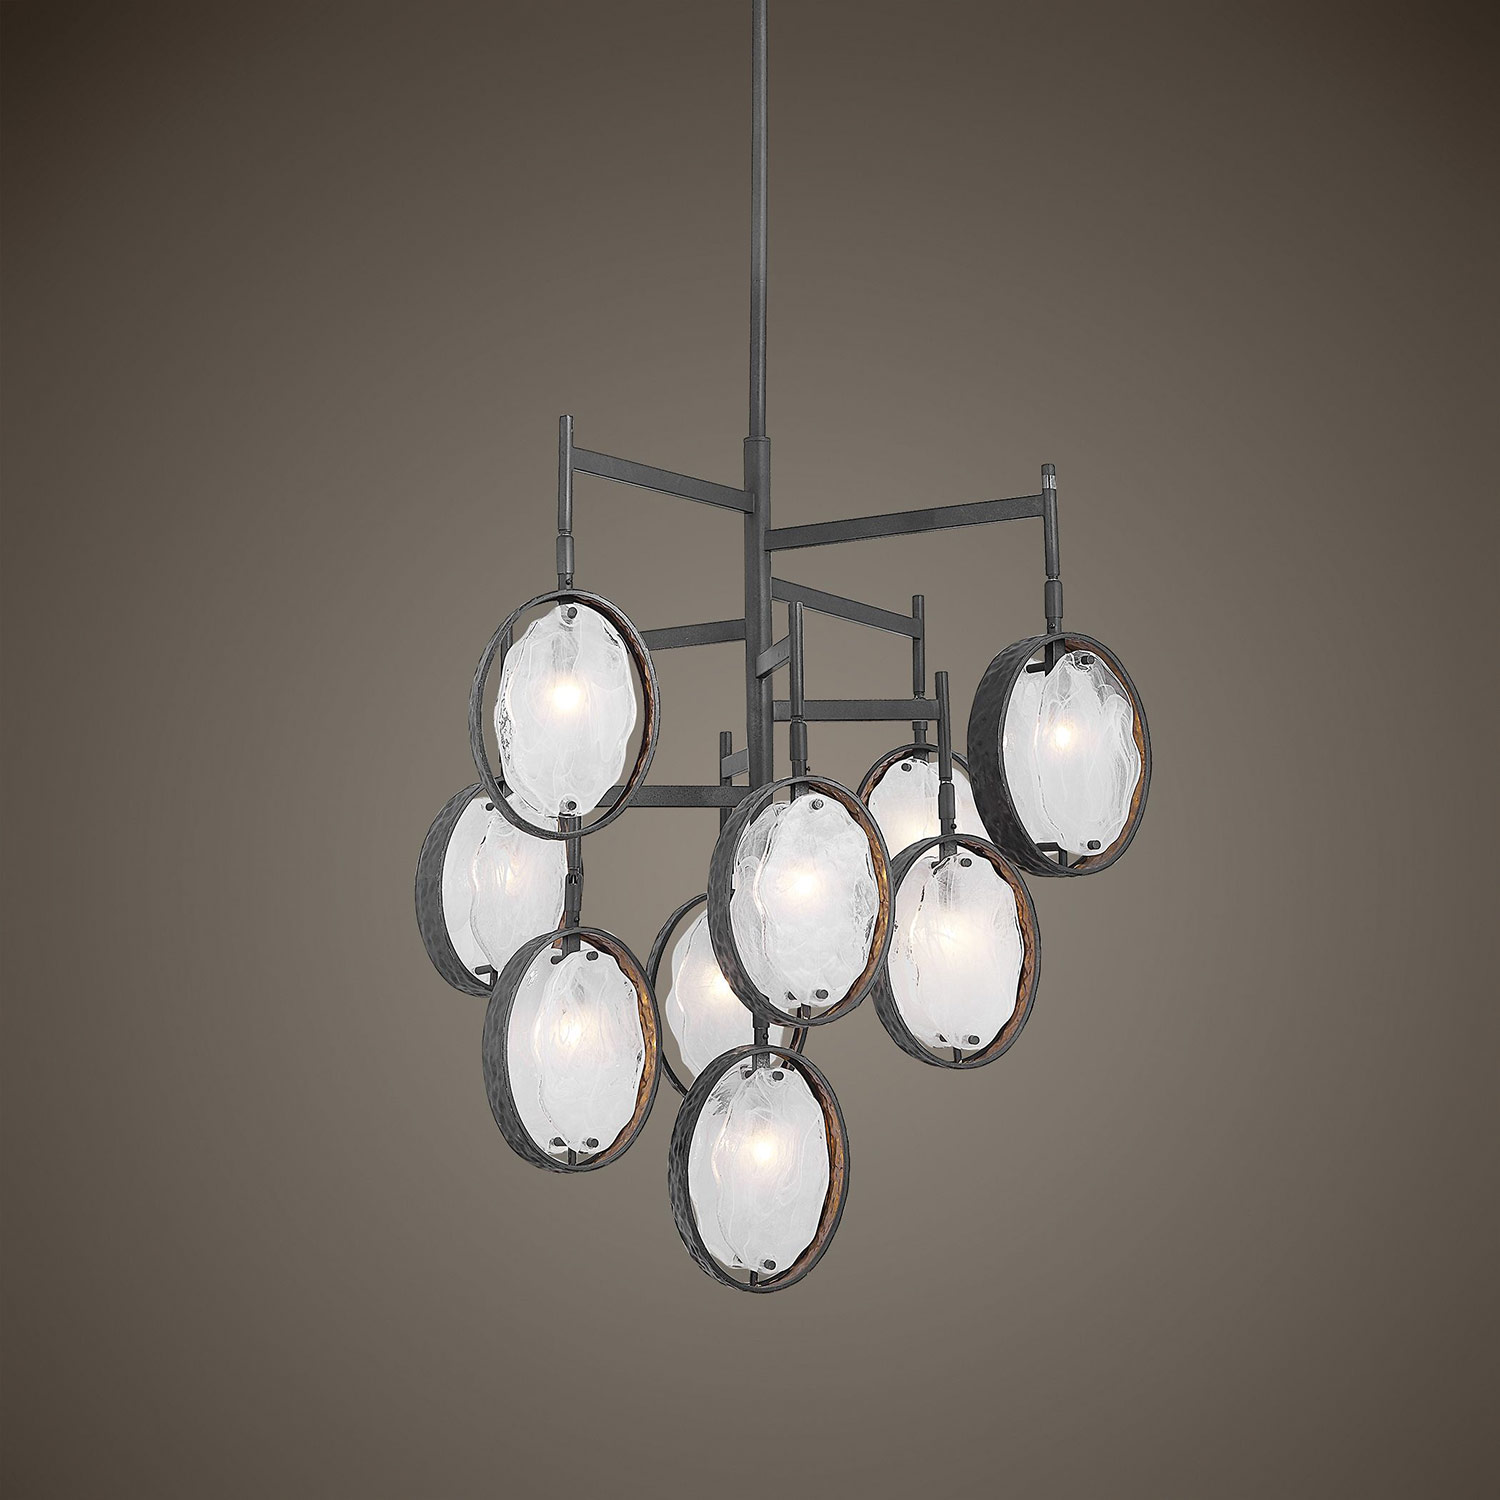 Uttermost Maxin 9-Light Chandelier - Dark Bronze